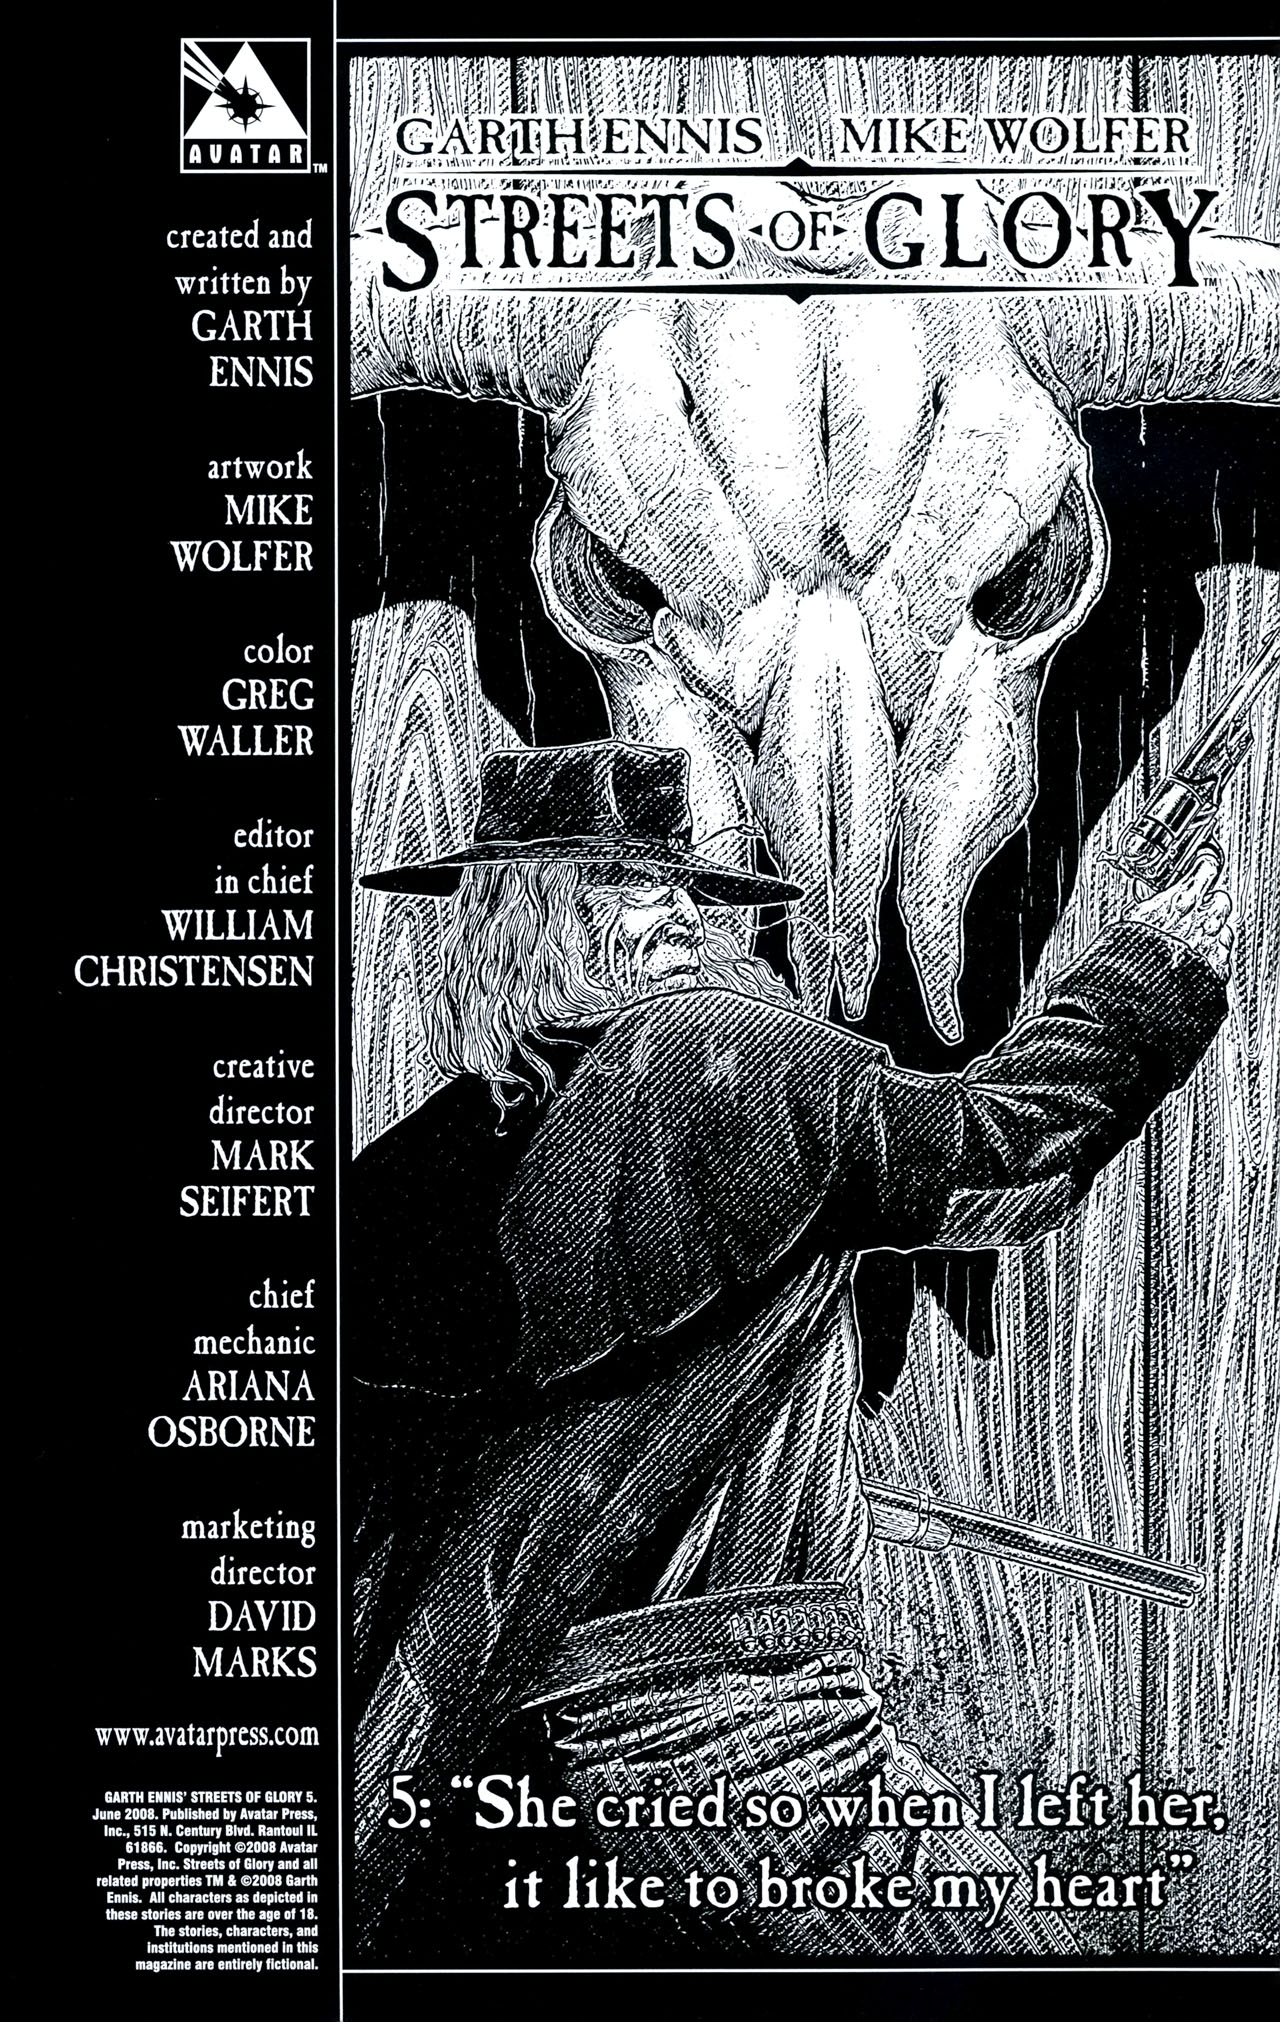 Read online Garth Ennis' Streets of Glory comic -  Issue #5 - 2